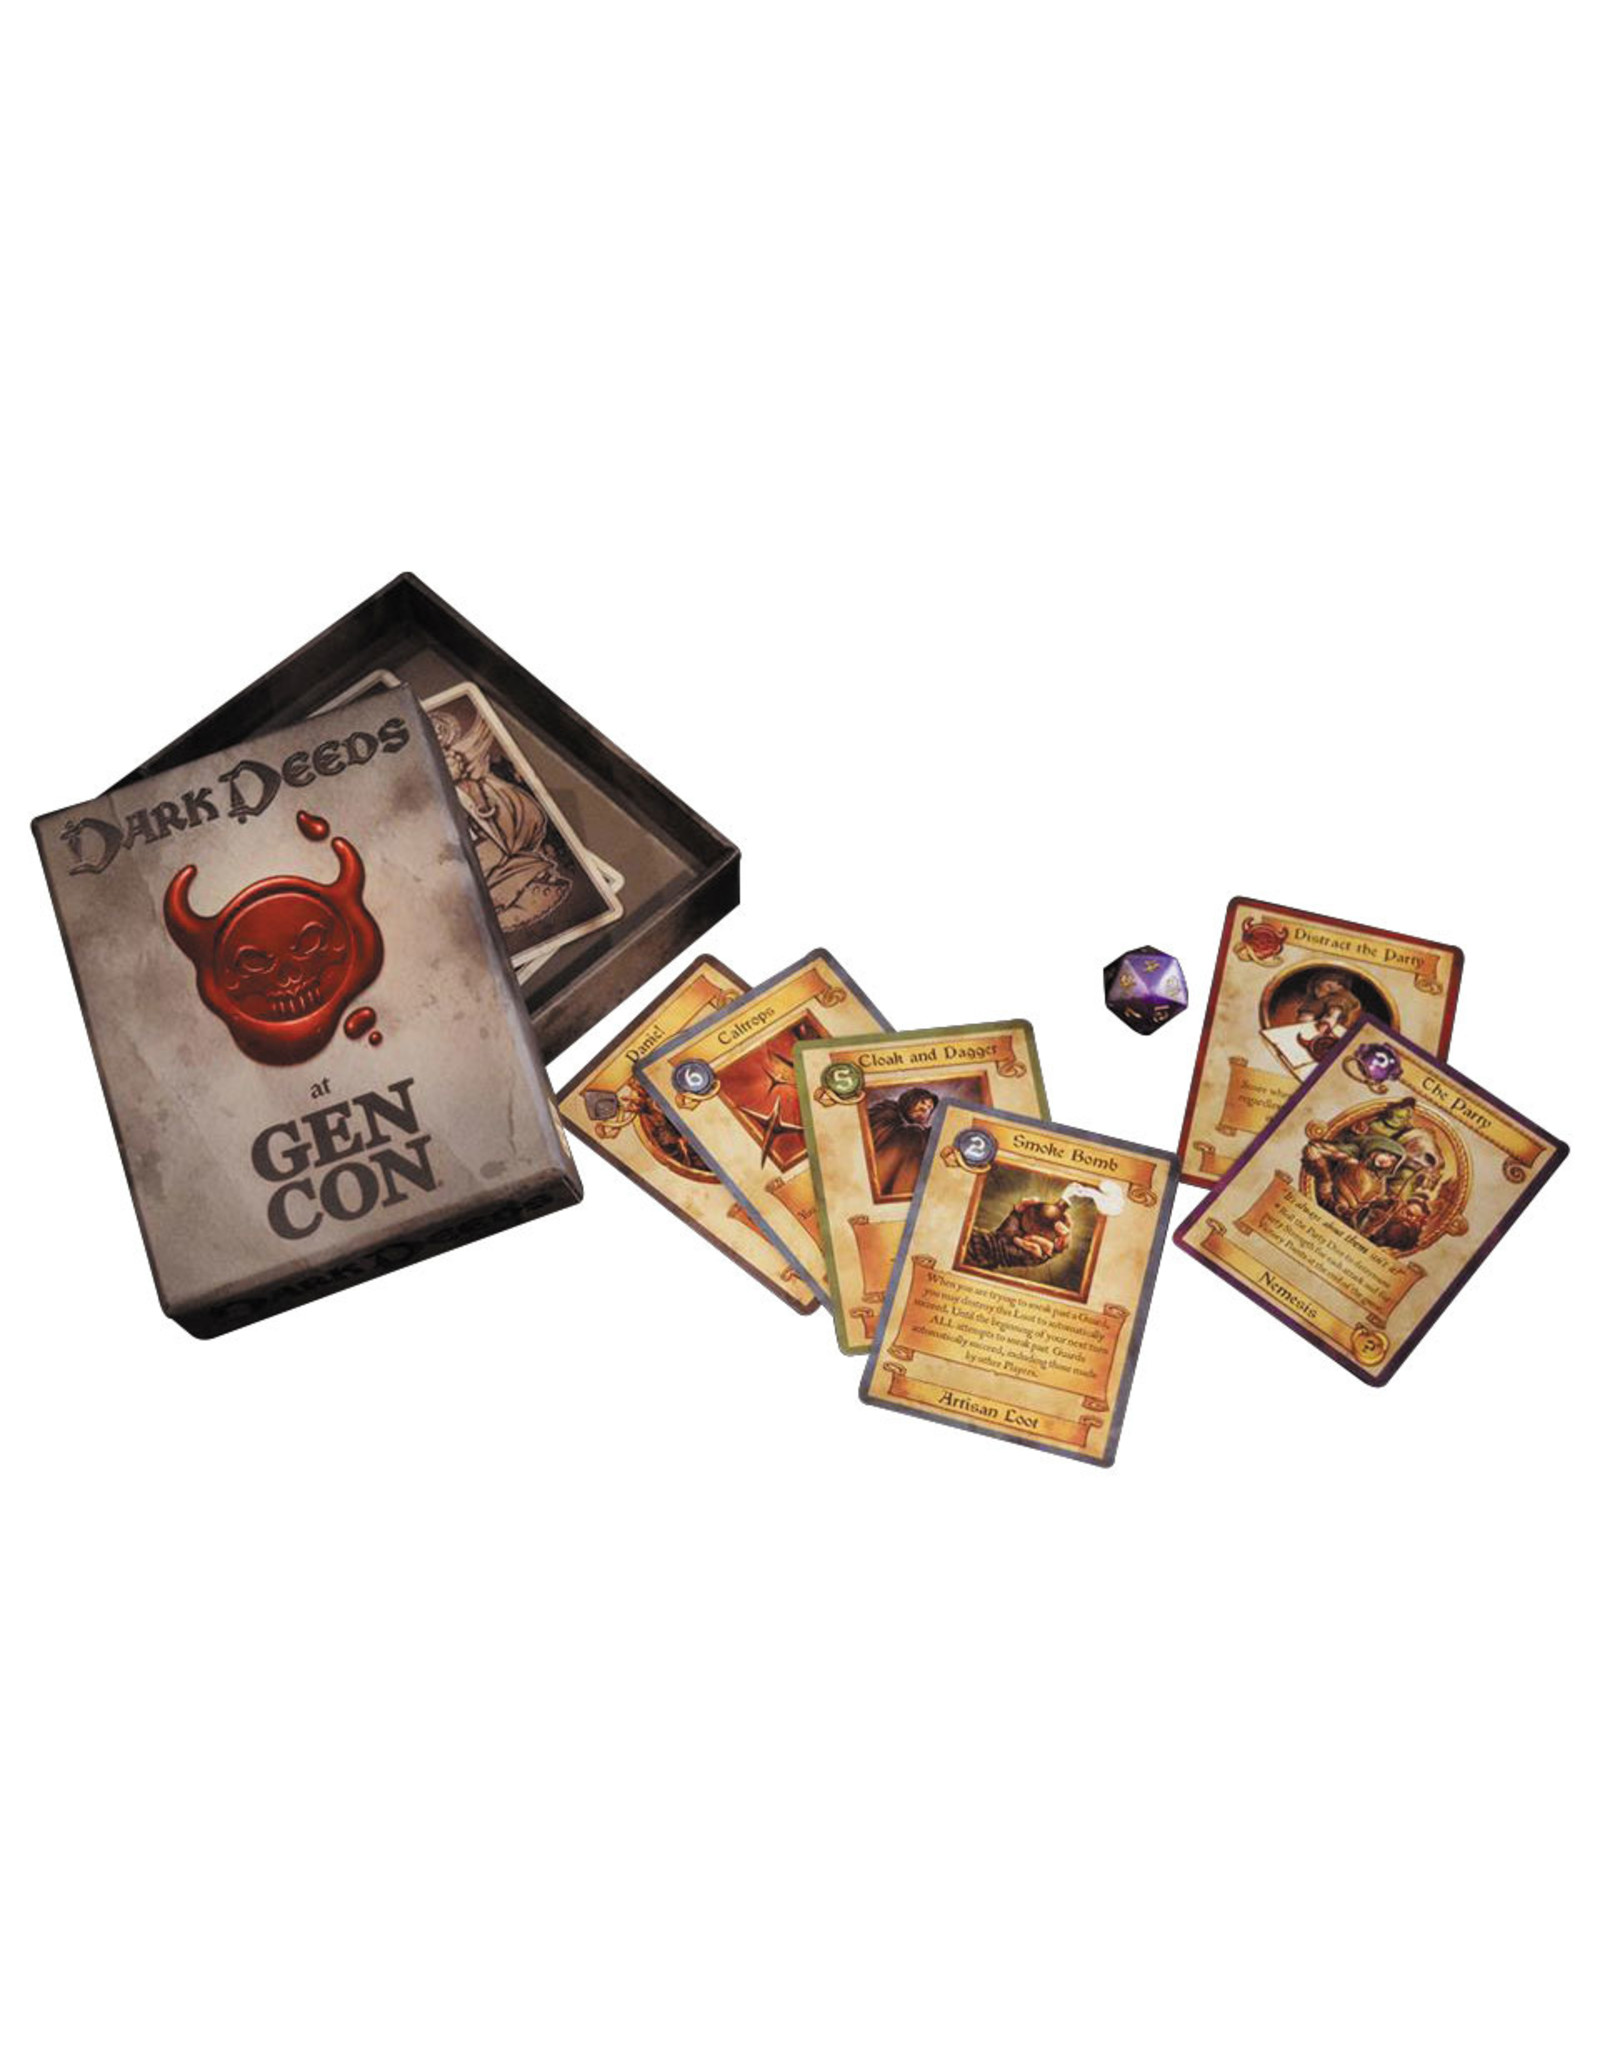 Games & Gears Dark Deeds: Gen Con Expansion